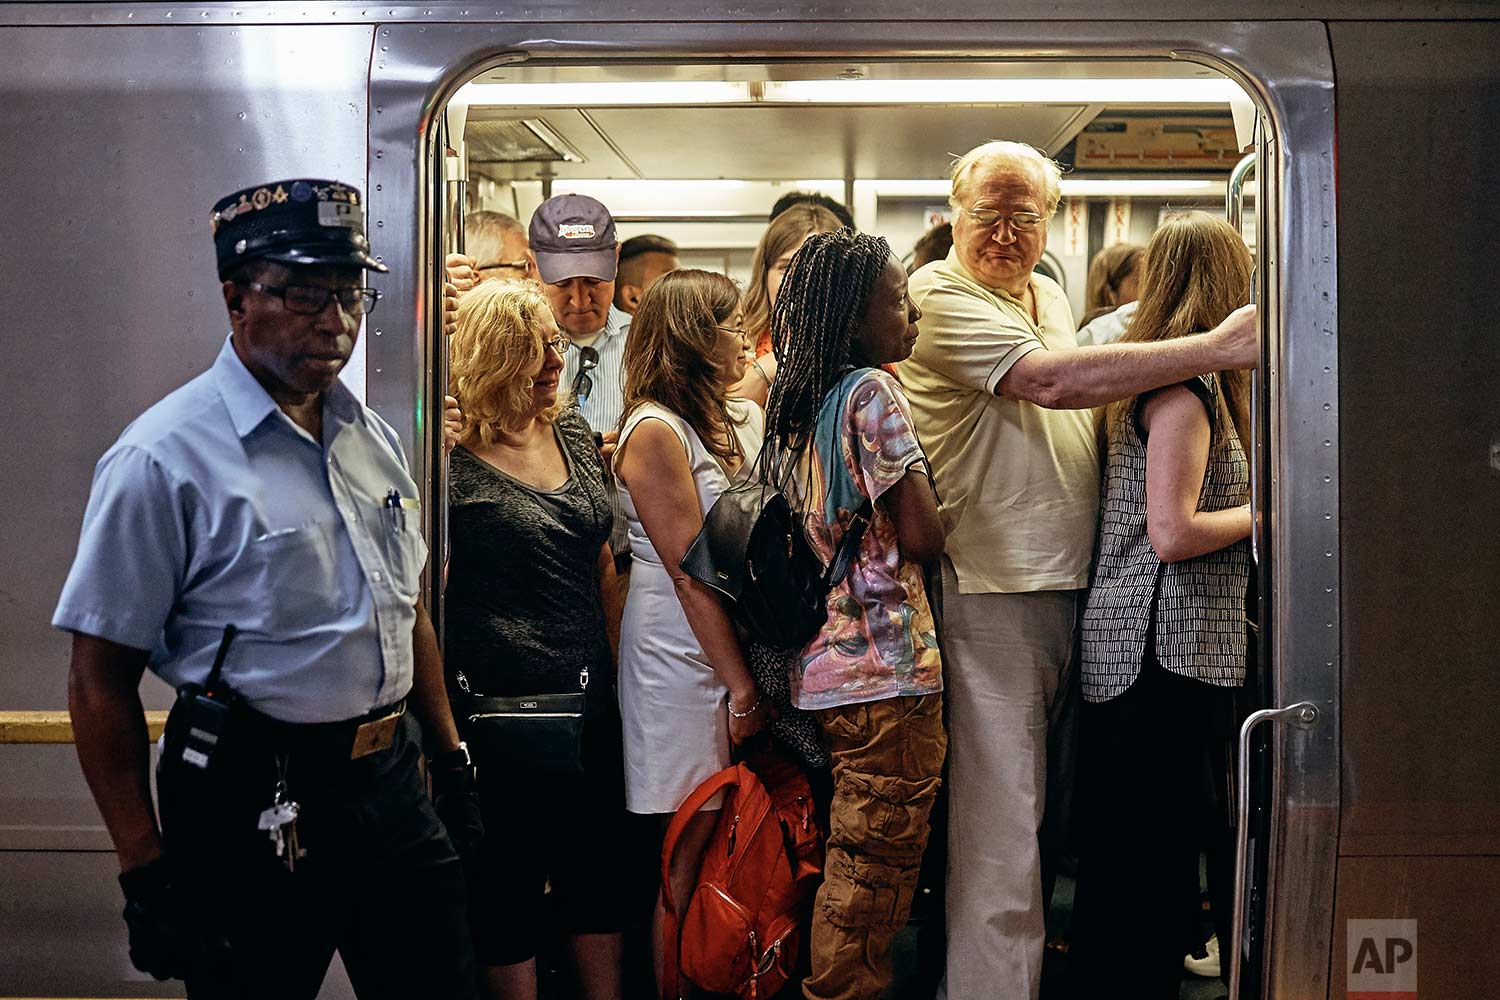 A PATH train packed with commuters is ready for departure from the PATH station in Hoboken Terminal, Monday, July 10, 2017, in Hoboken, N.J. (AP Photo/Andres Kudacki)